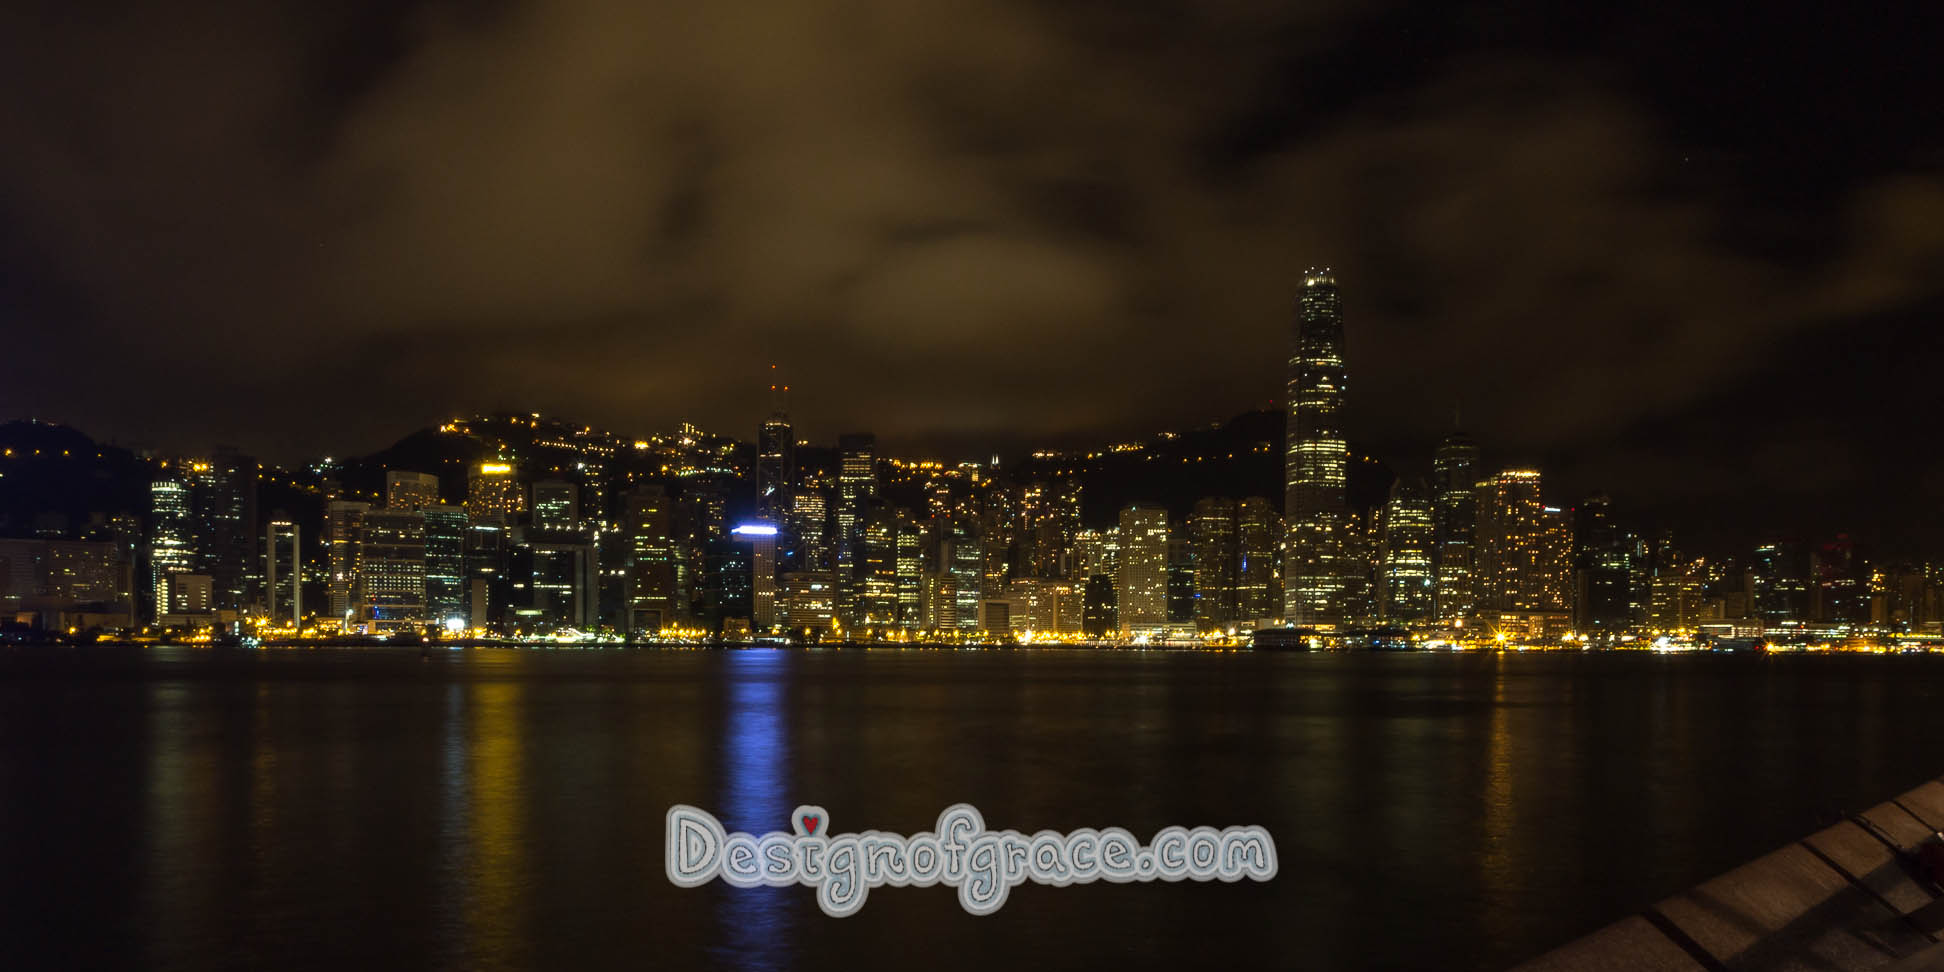 Nitescape of Hong Kong city over the waters